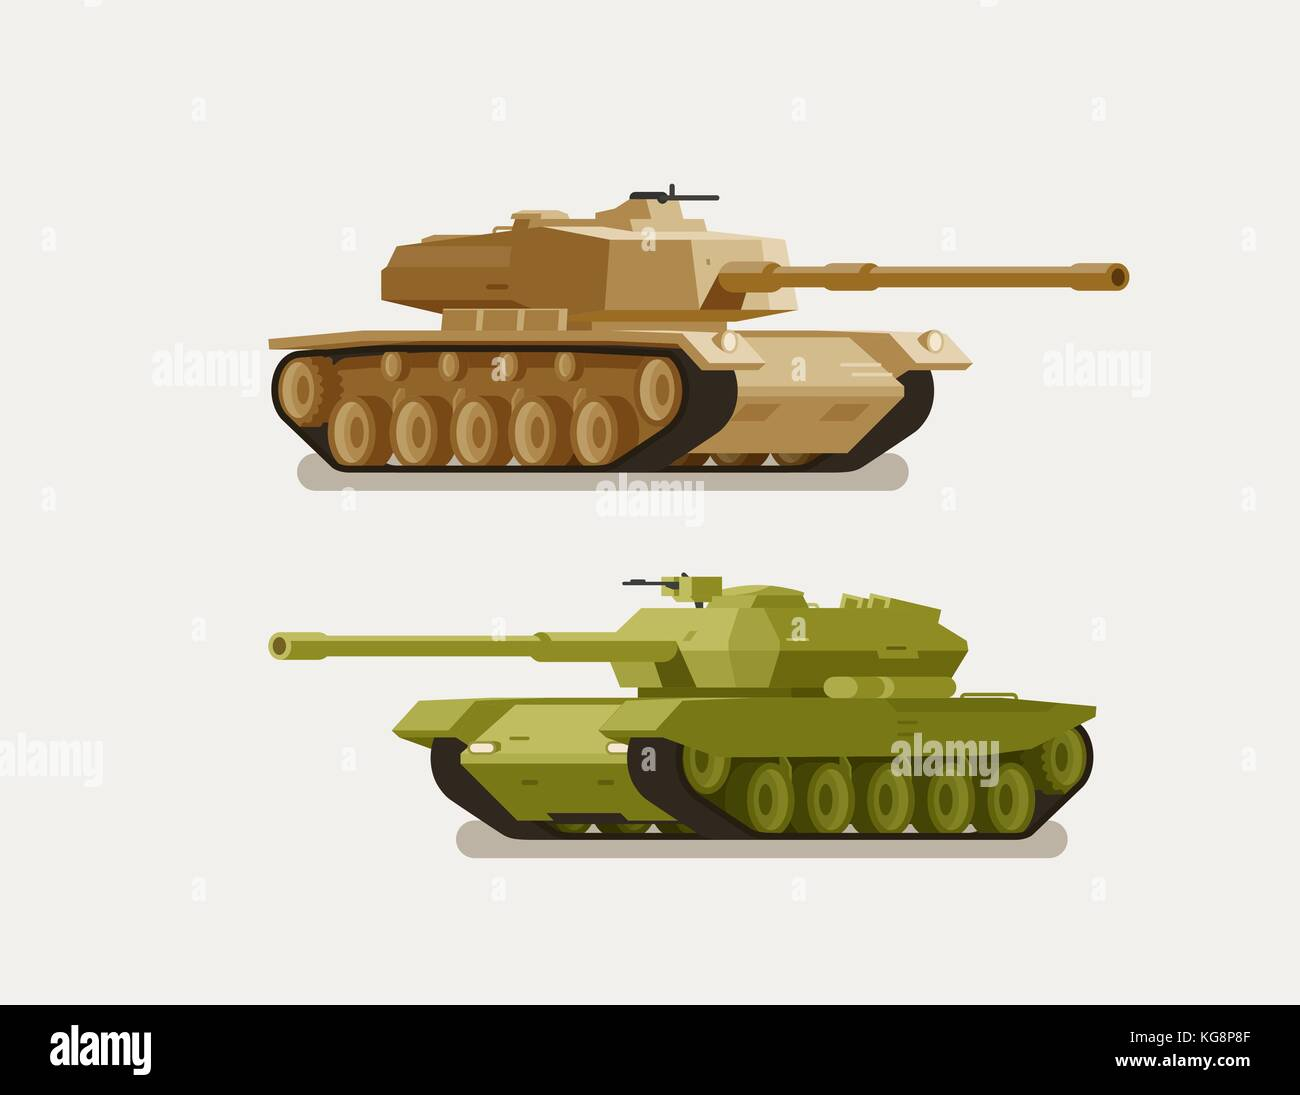 Military tank, army concept. War, weapon, battle symbol or icon. Vector illustration - Stock Vector